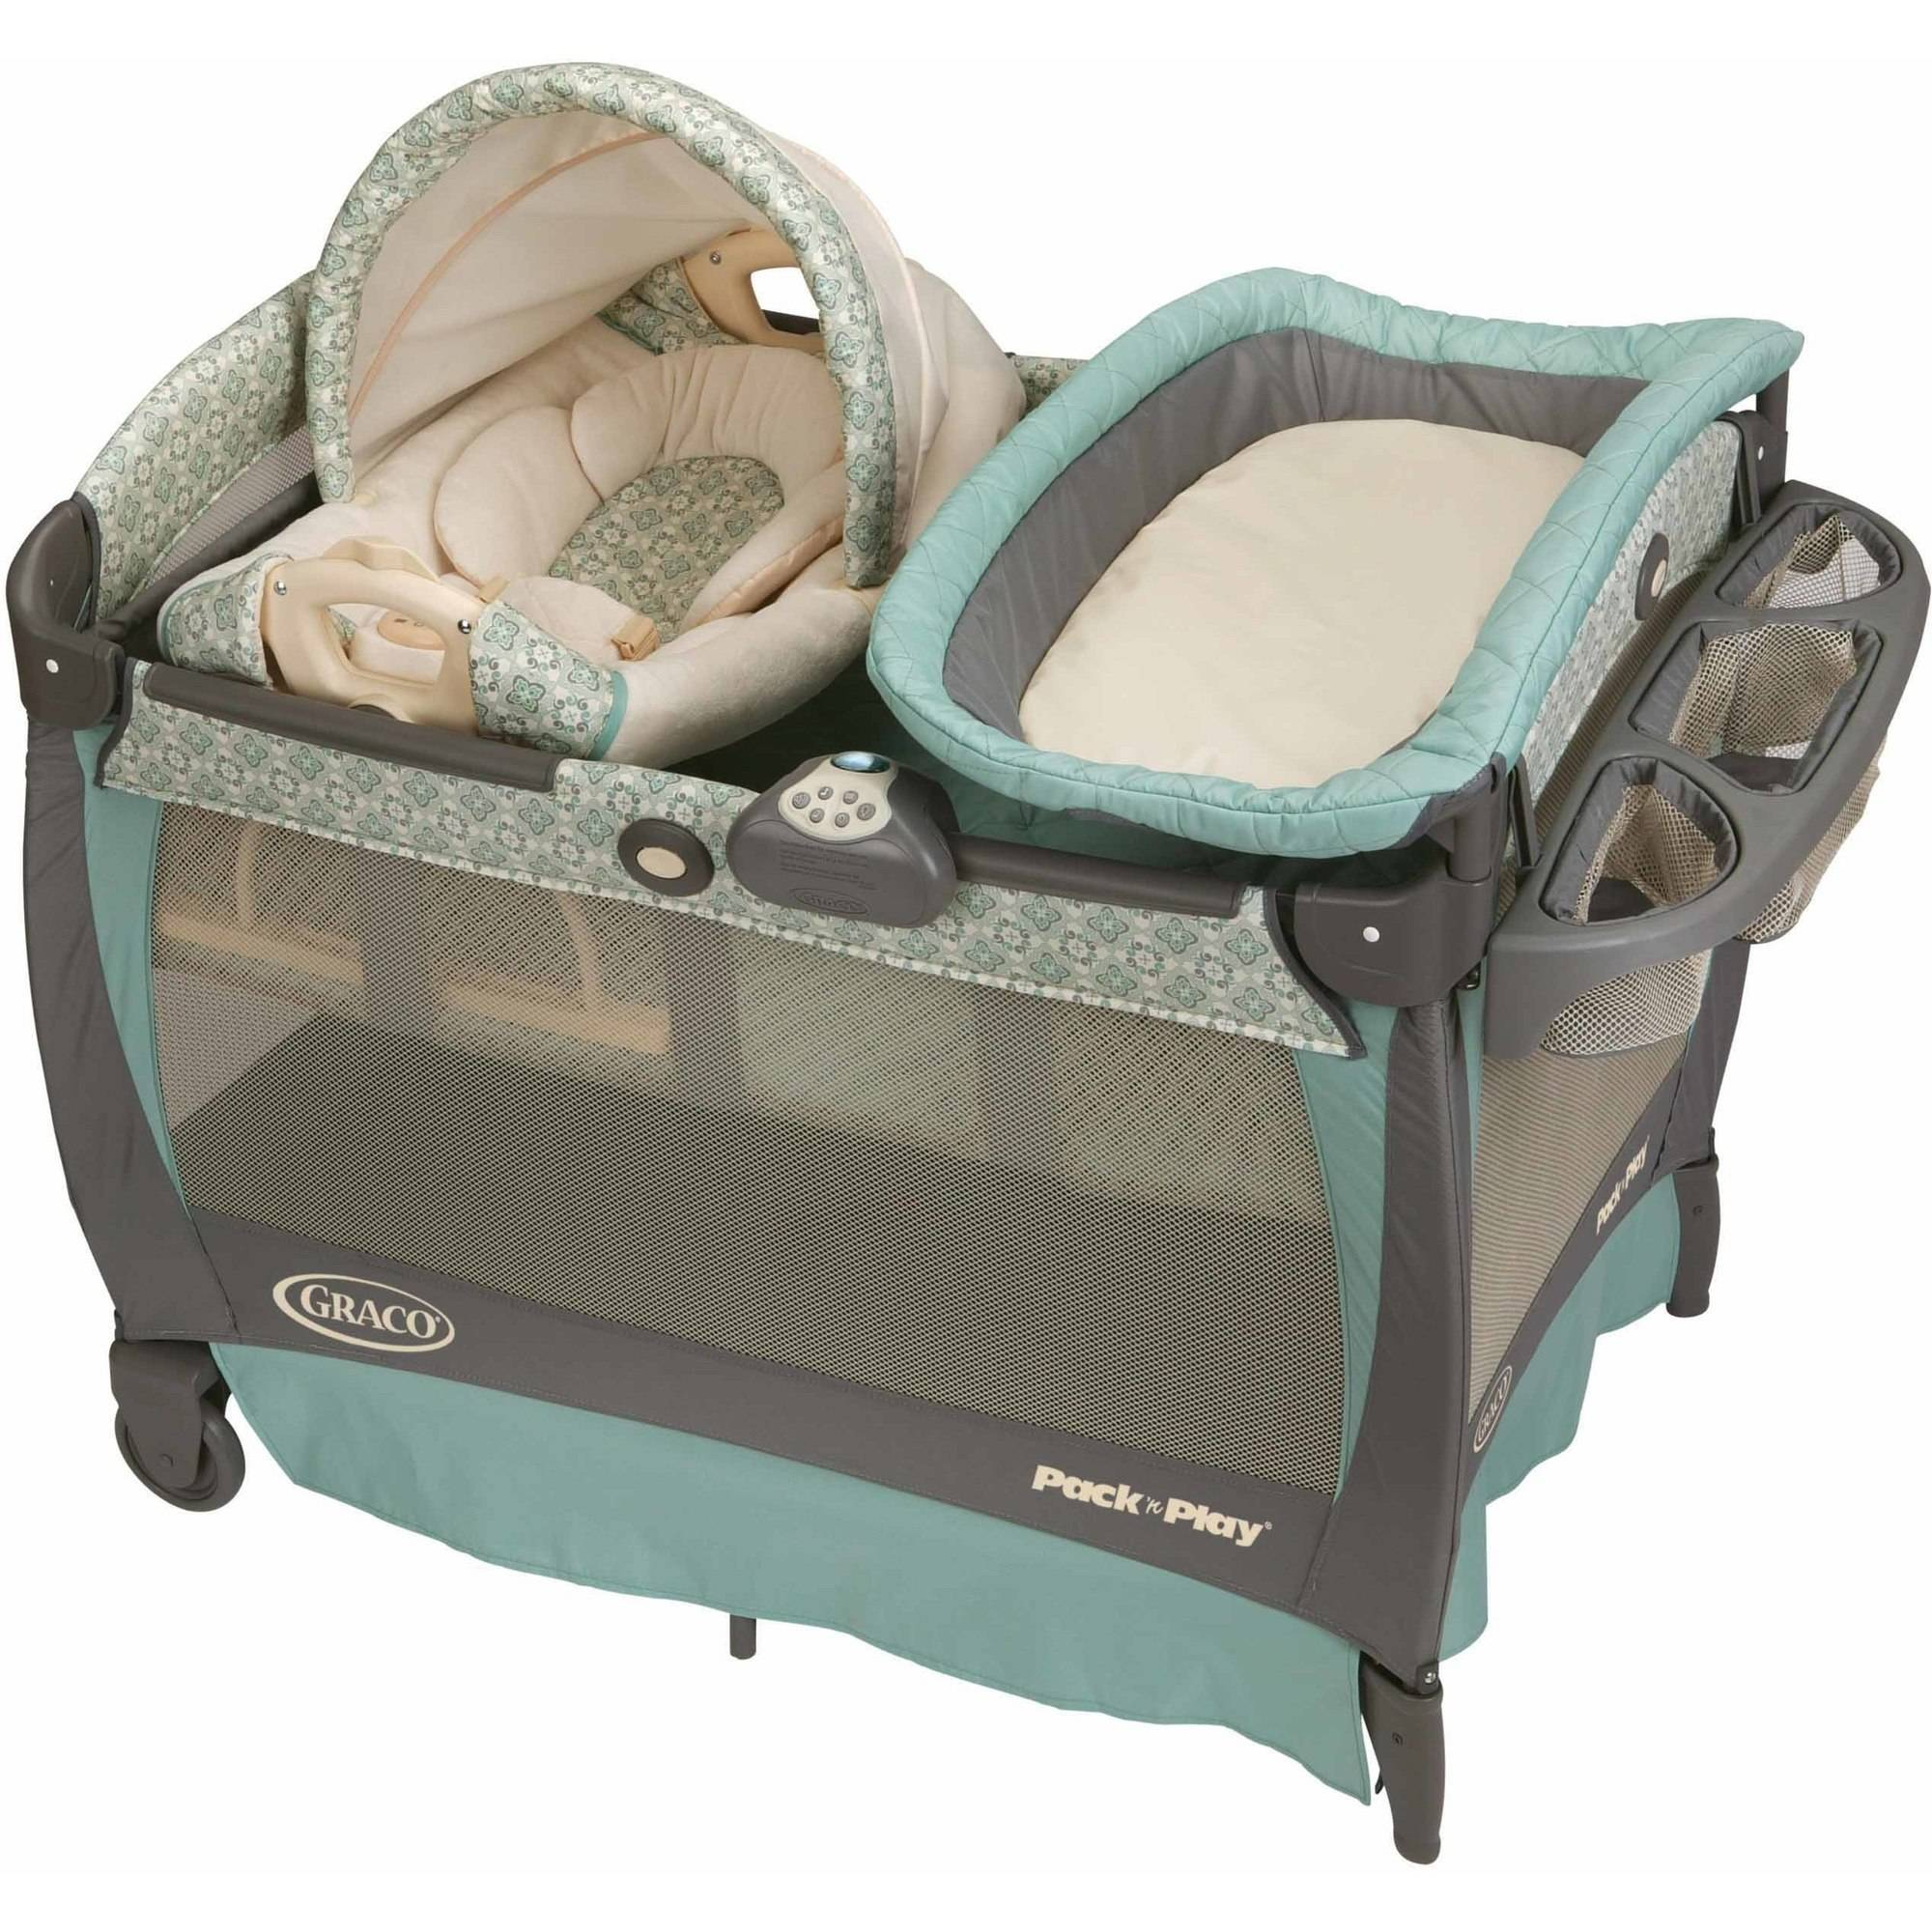 Graco Pack 'N Play Play Pen with Cuddle Cove Rocking Seat, Winslet by Graco